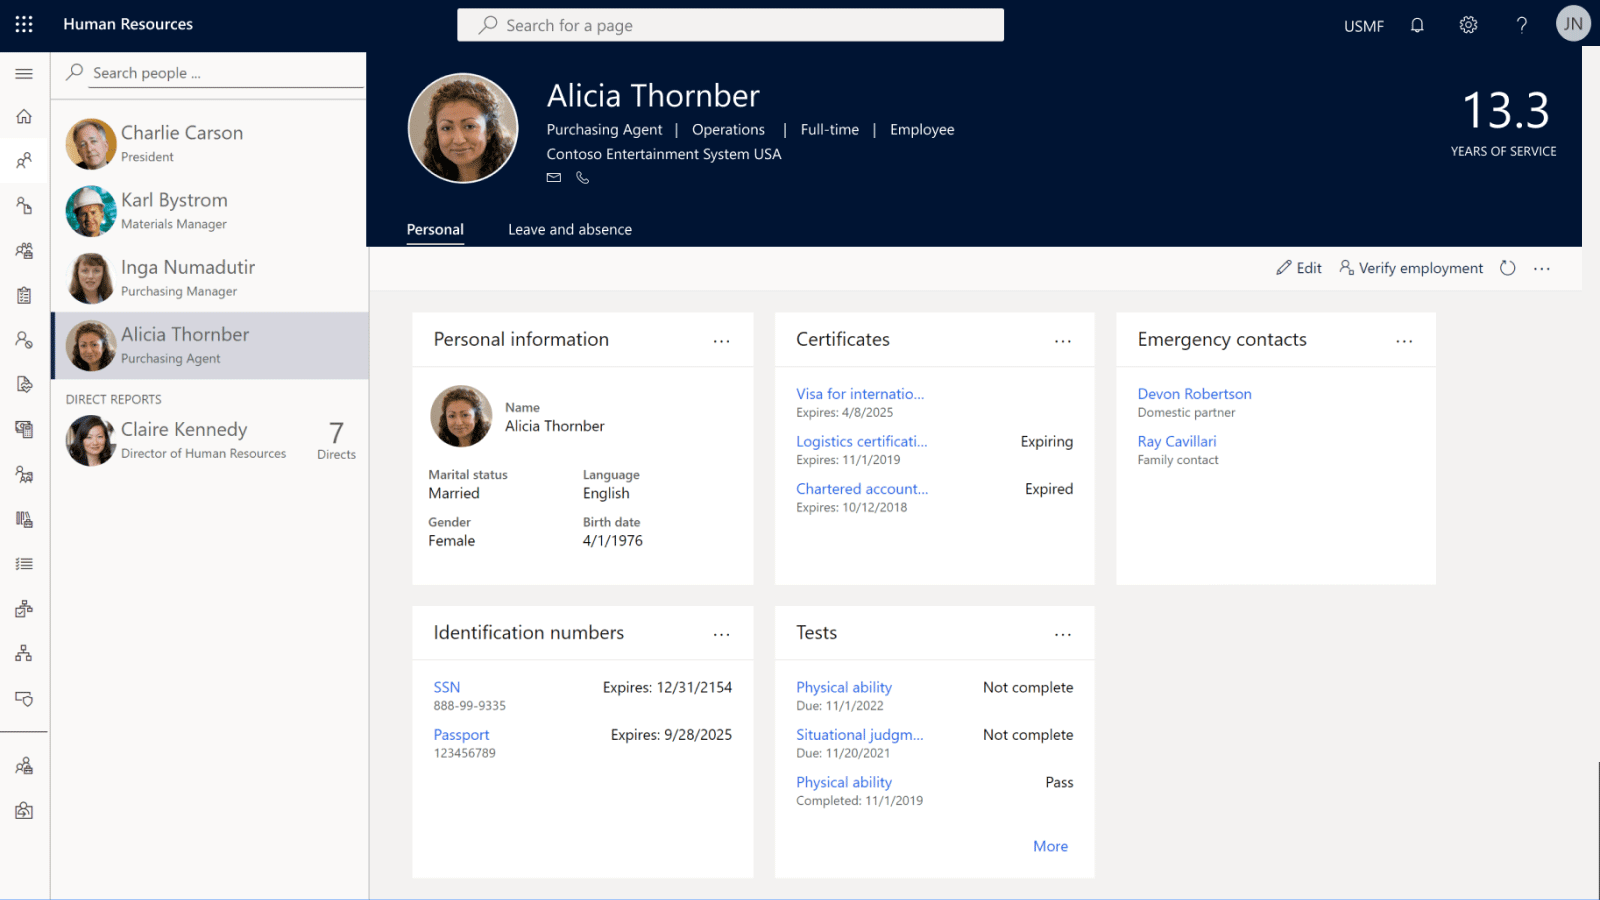 Dynamics 365 Human Resources の視覚化